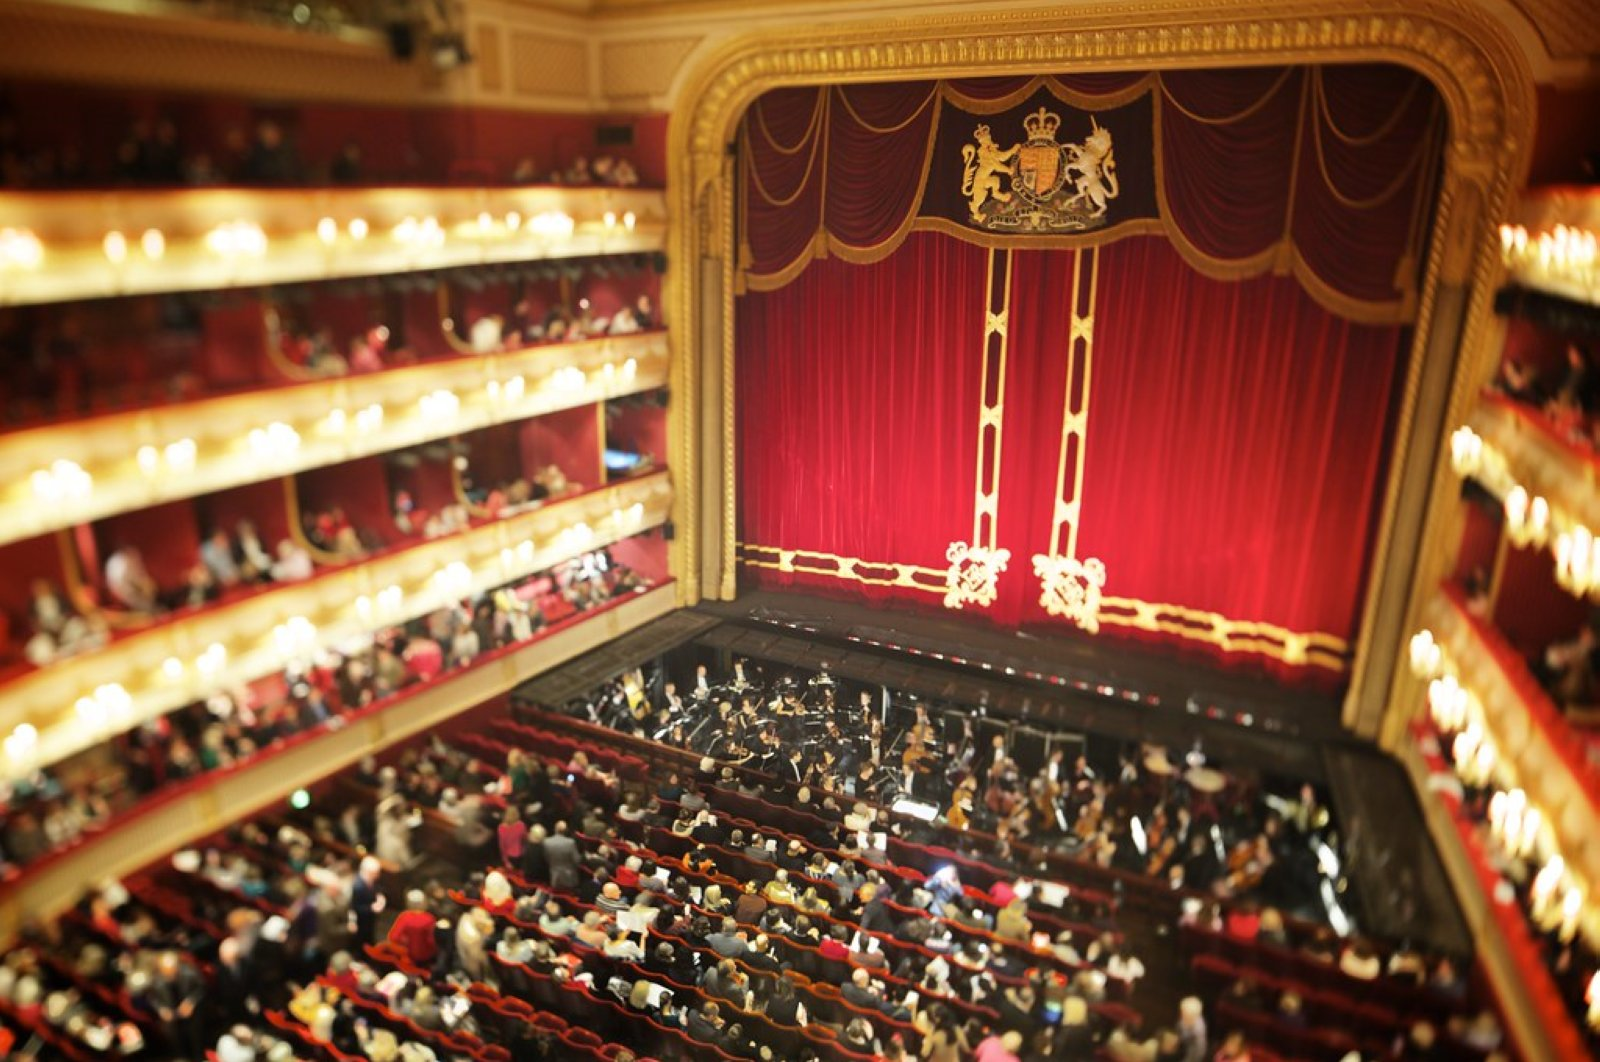 The Royal Opera House has made the recordings of 14 performances available free of charge.